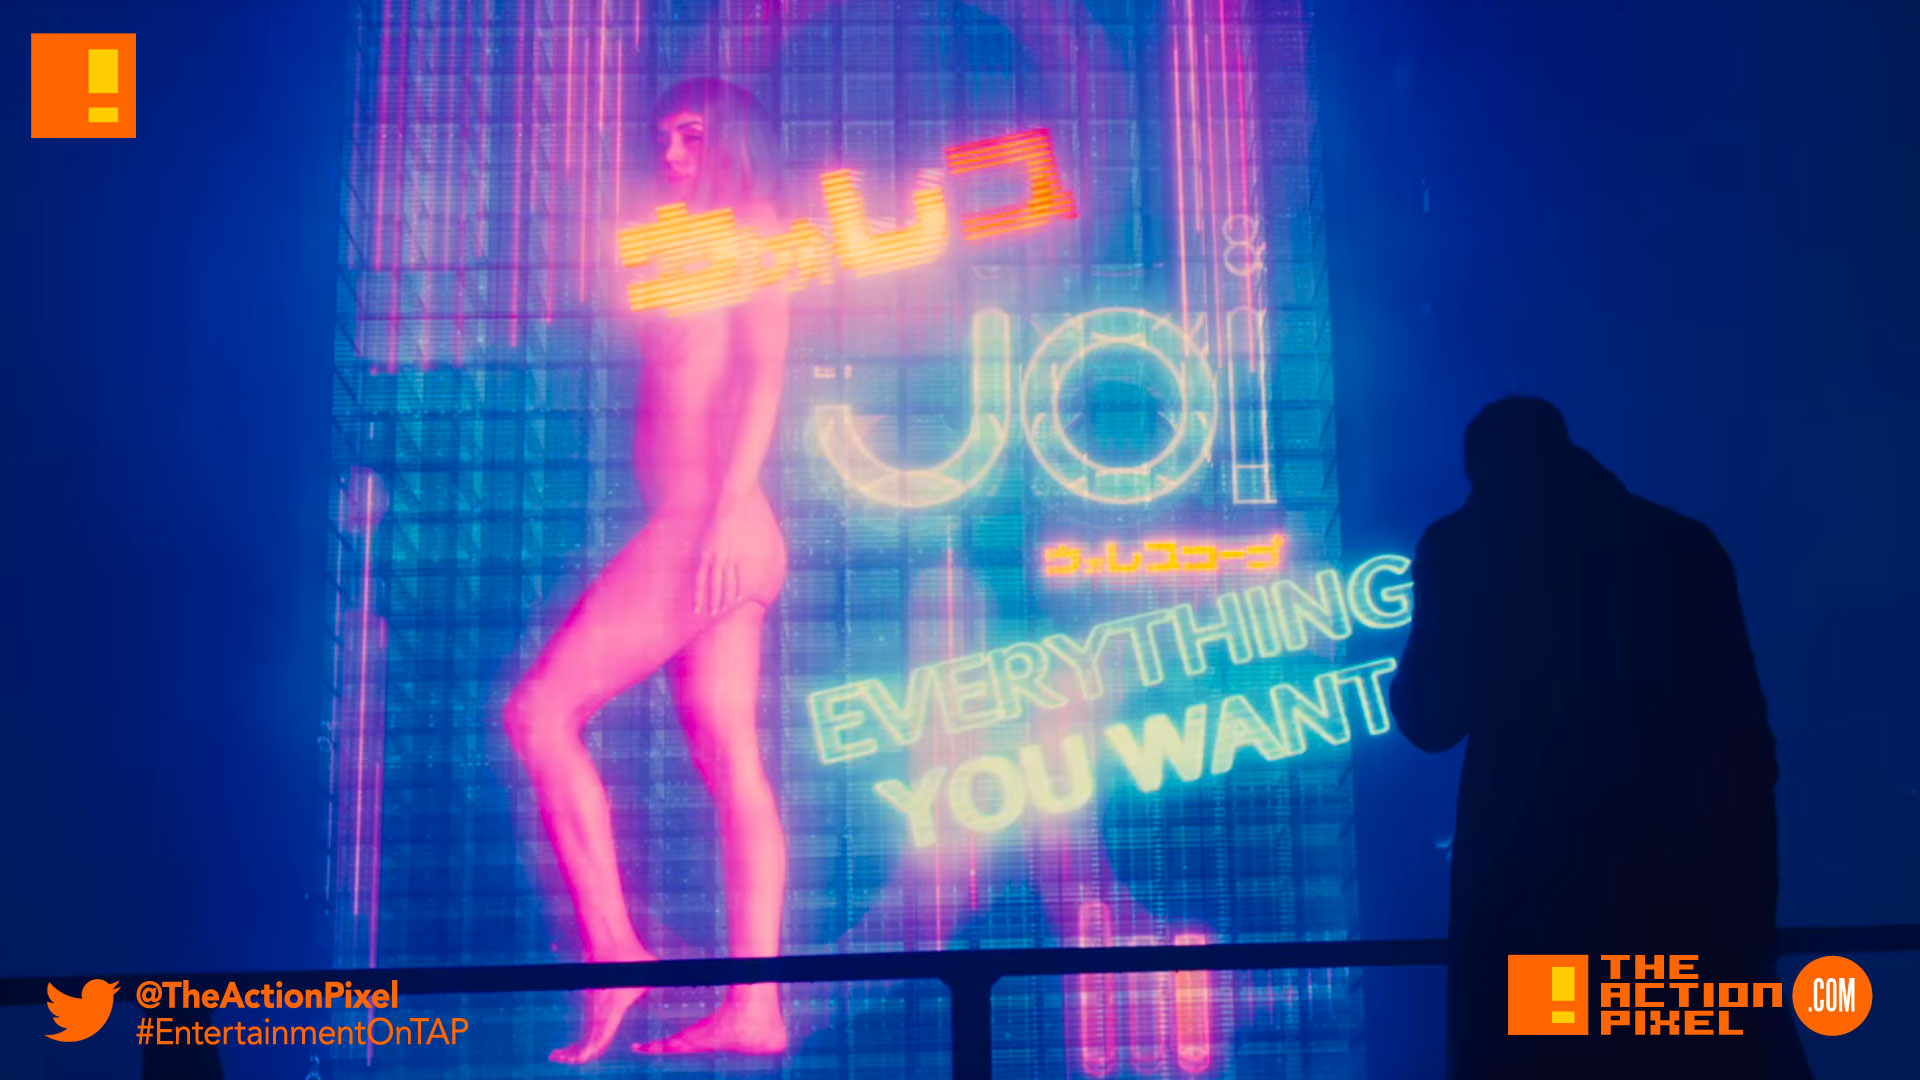 blade runner 2049, ryan gosling, harrison ford, trailer, sony, columbia, icon, warner bros. entertainment , the action pixel, entertainment on tap, rick deckard,blade runner,poster, teaser, warner bros, columbia,ridley scott